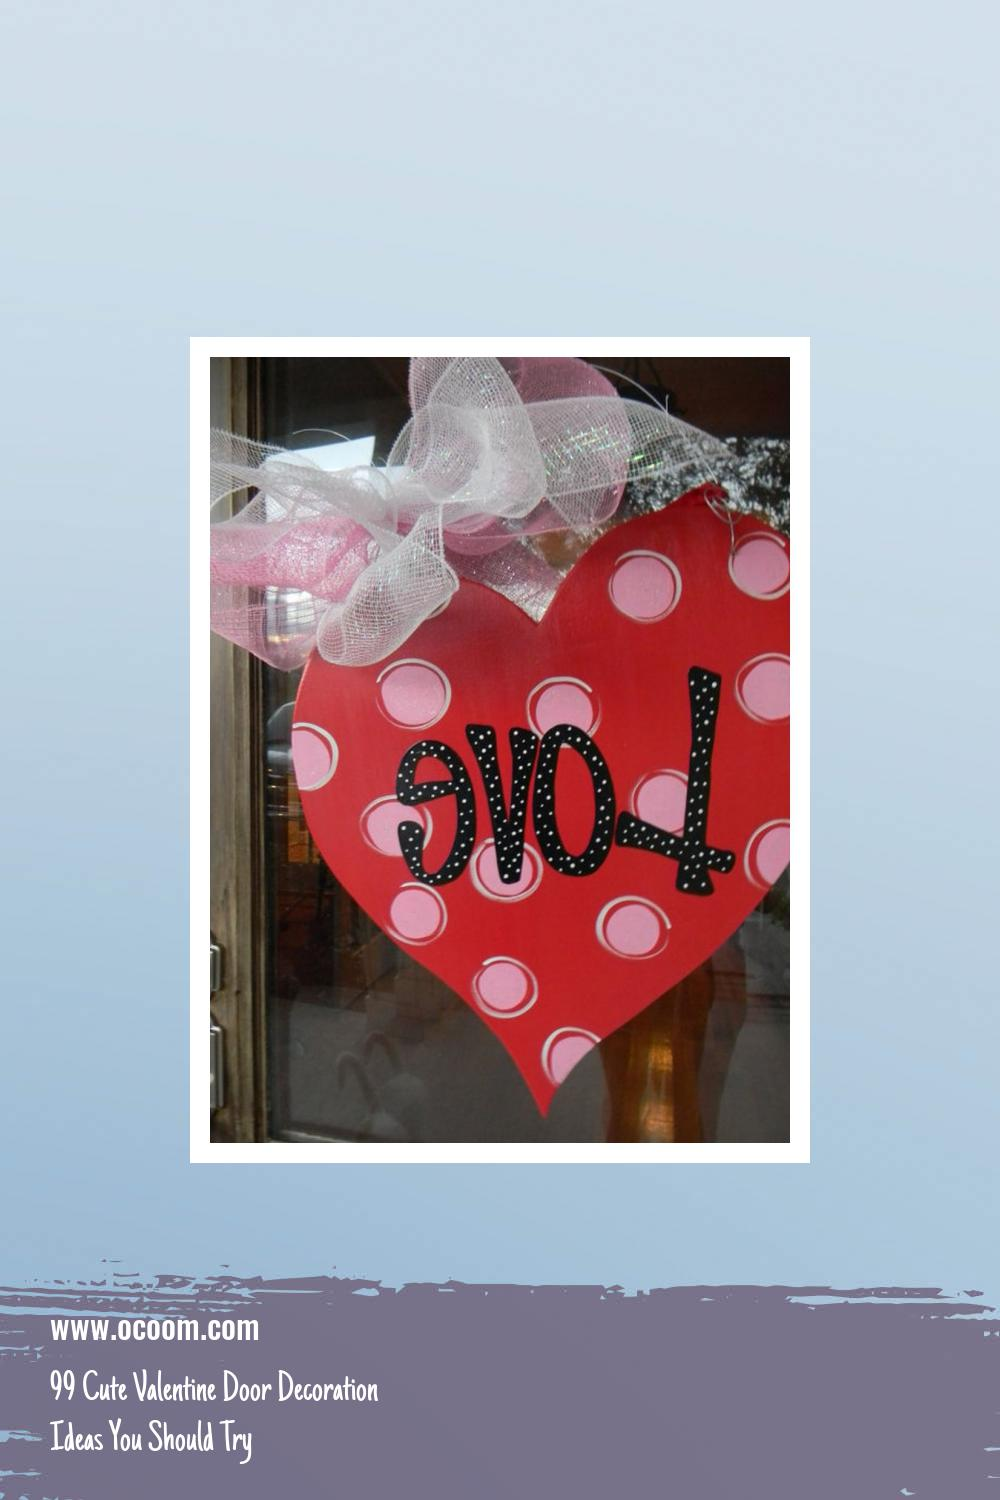 99 Cute Valentine Door Decoration Ideas You Should Try 13